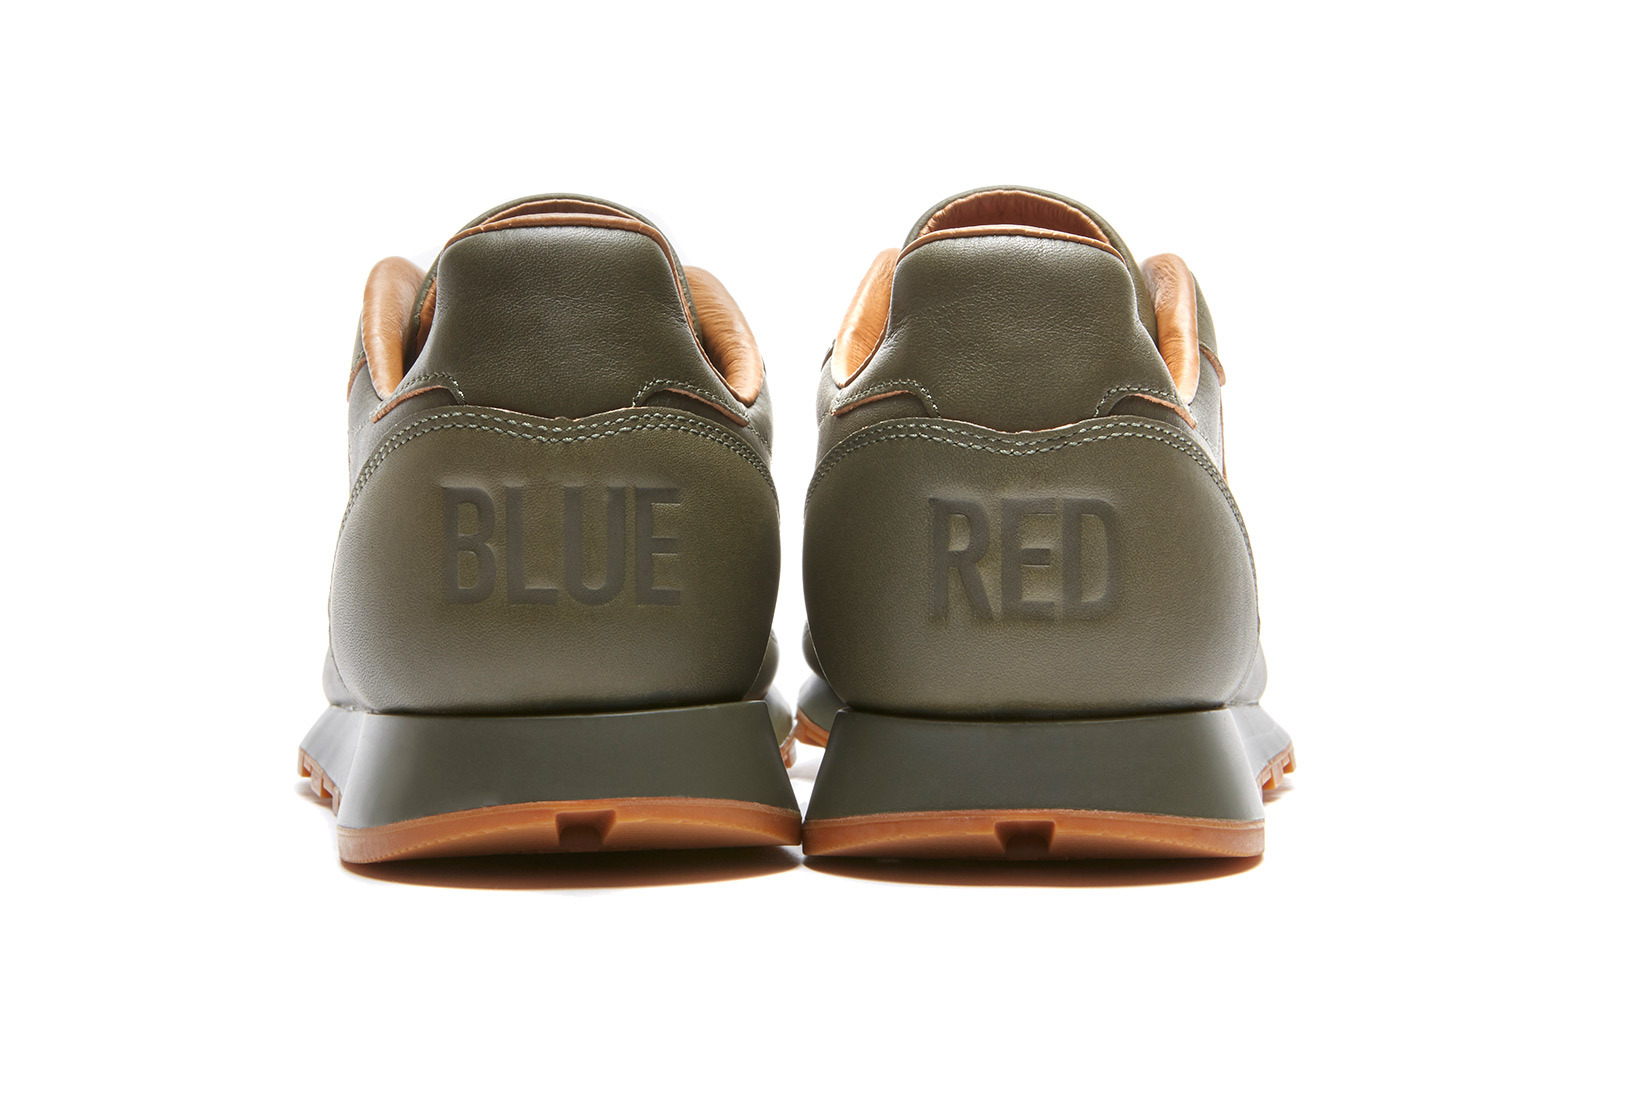 kendrick-lamar-reebok-classic-last-red-and-blue-release-2